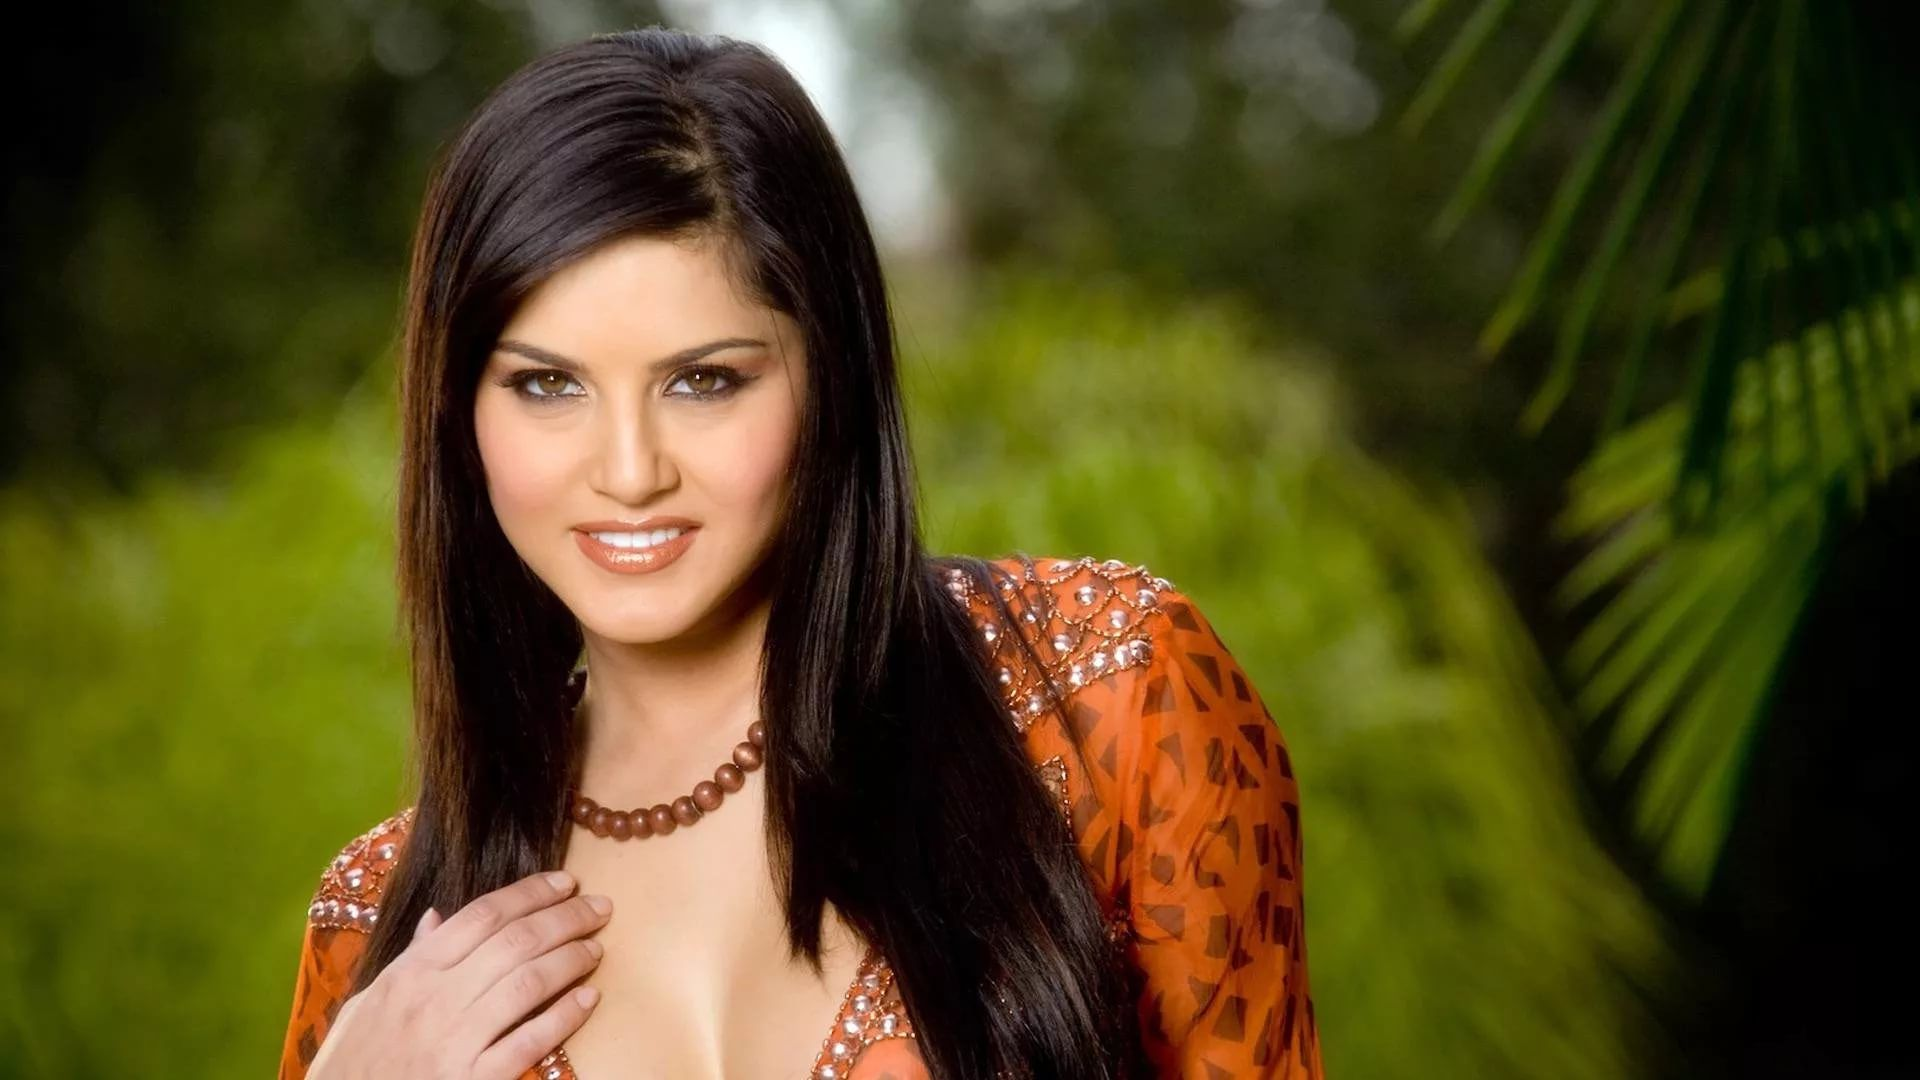 Sunny Leone Download hd desktop wallpaper